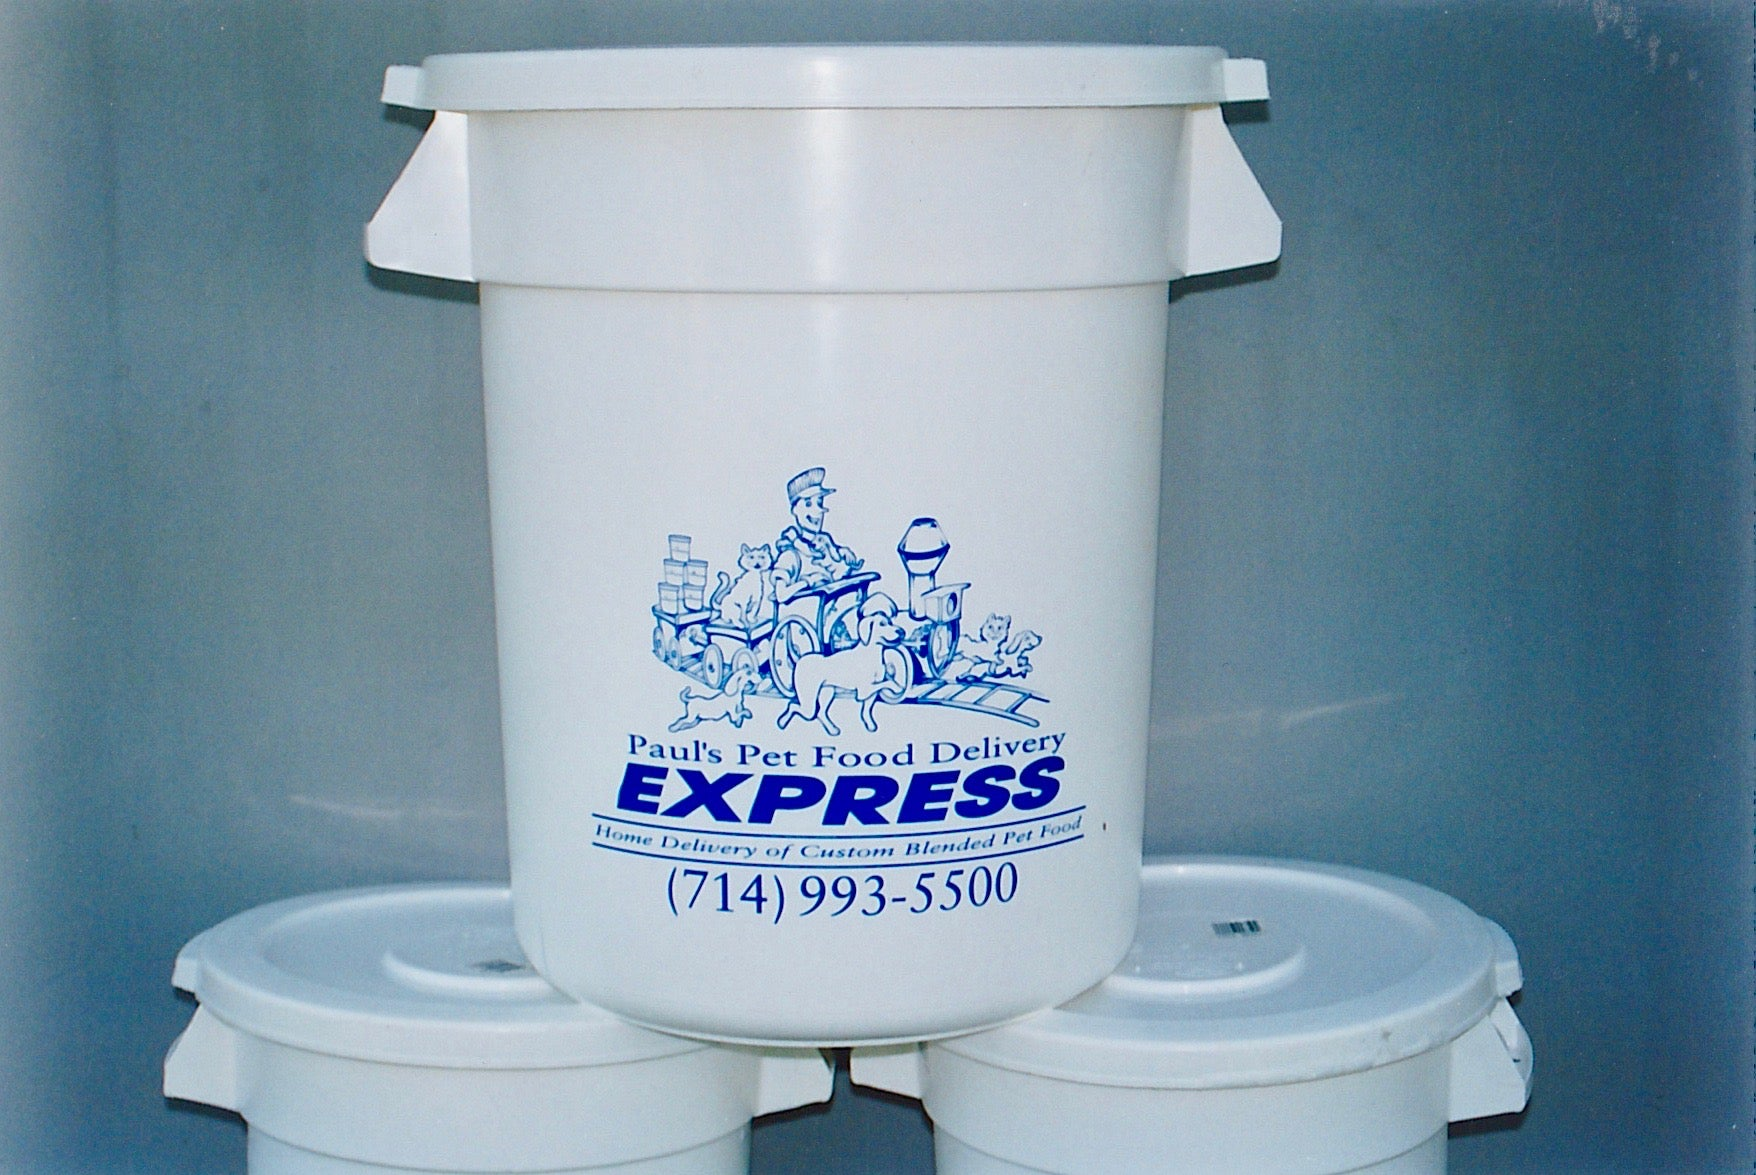 Pet Food Delivery Buckets